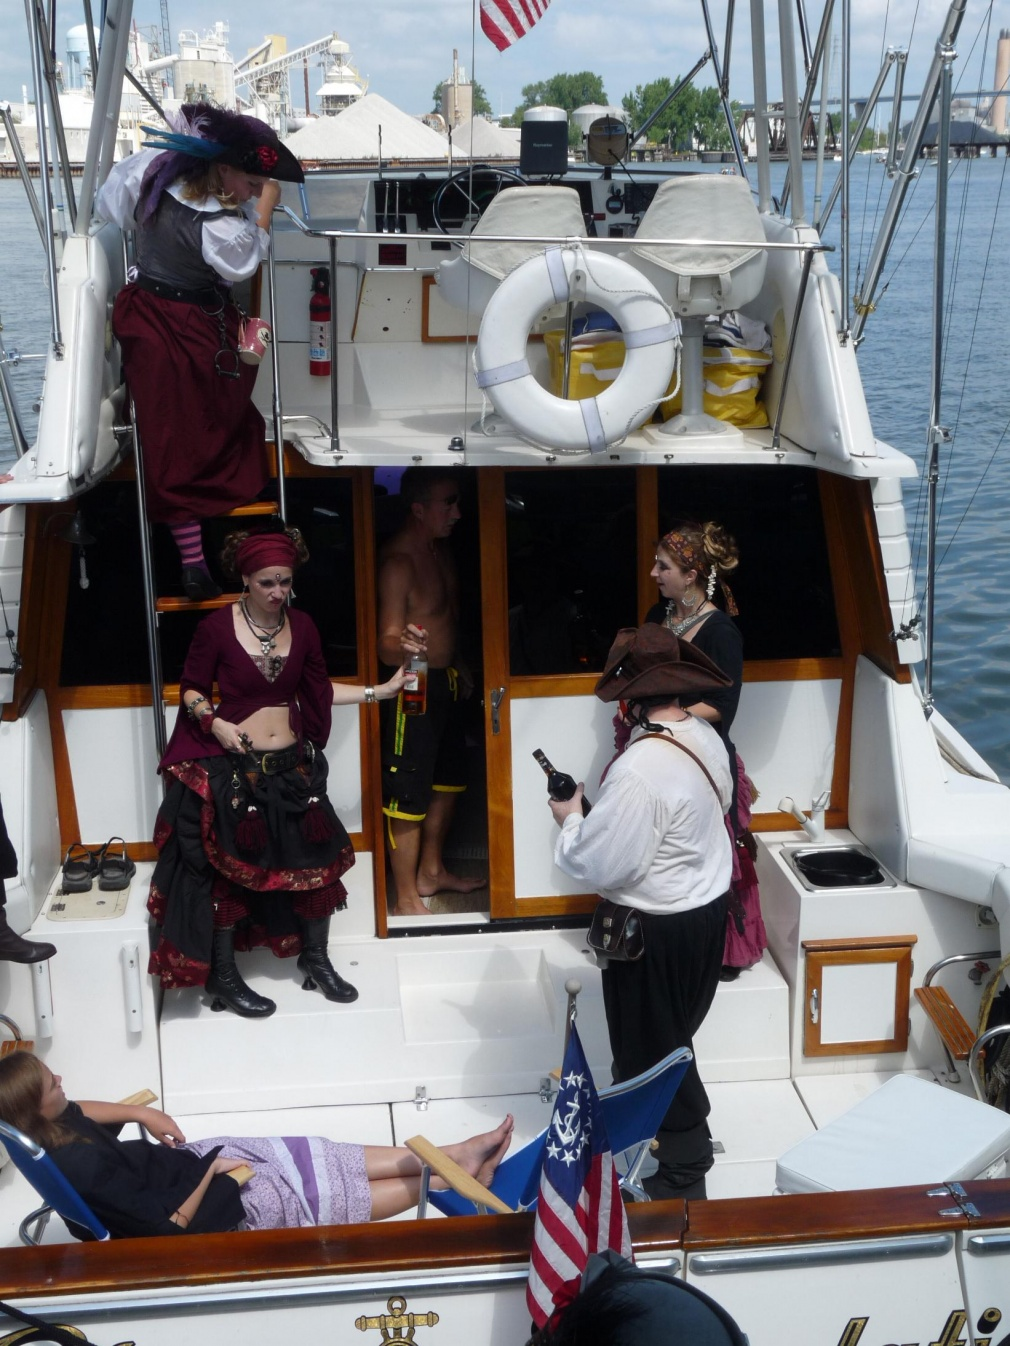 Click image for larger version  Name:Green Bay 164 pirate boarding.jpg Views:106 Size:436.9 KB ID:99013